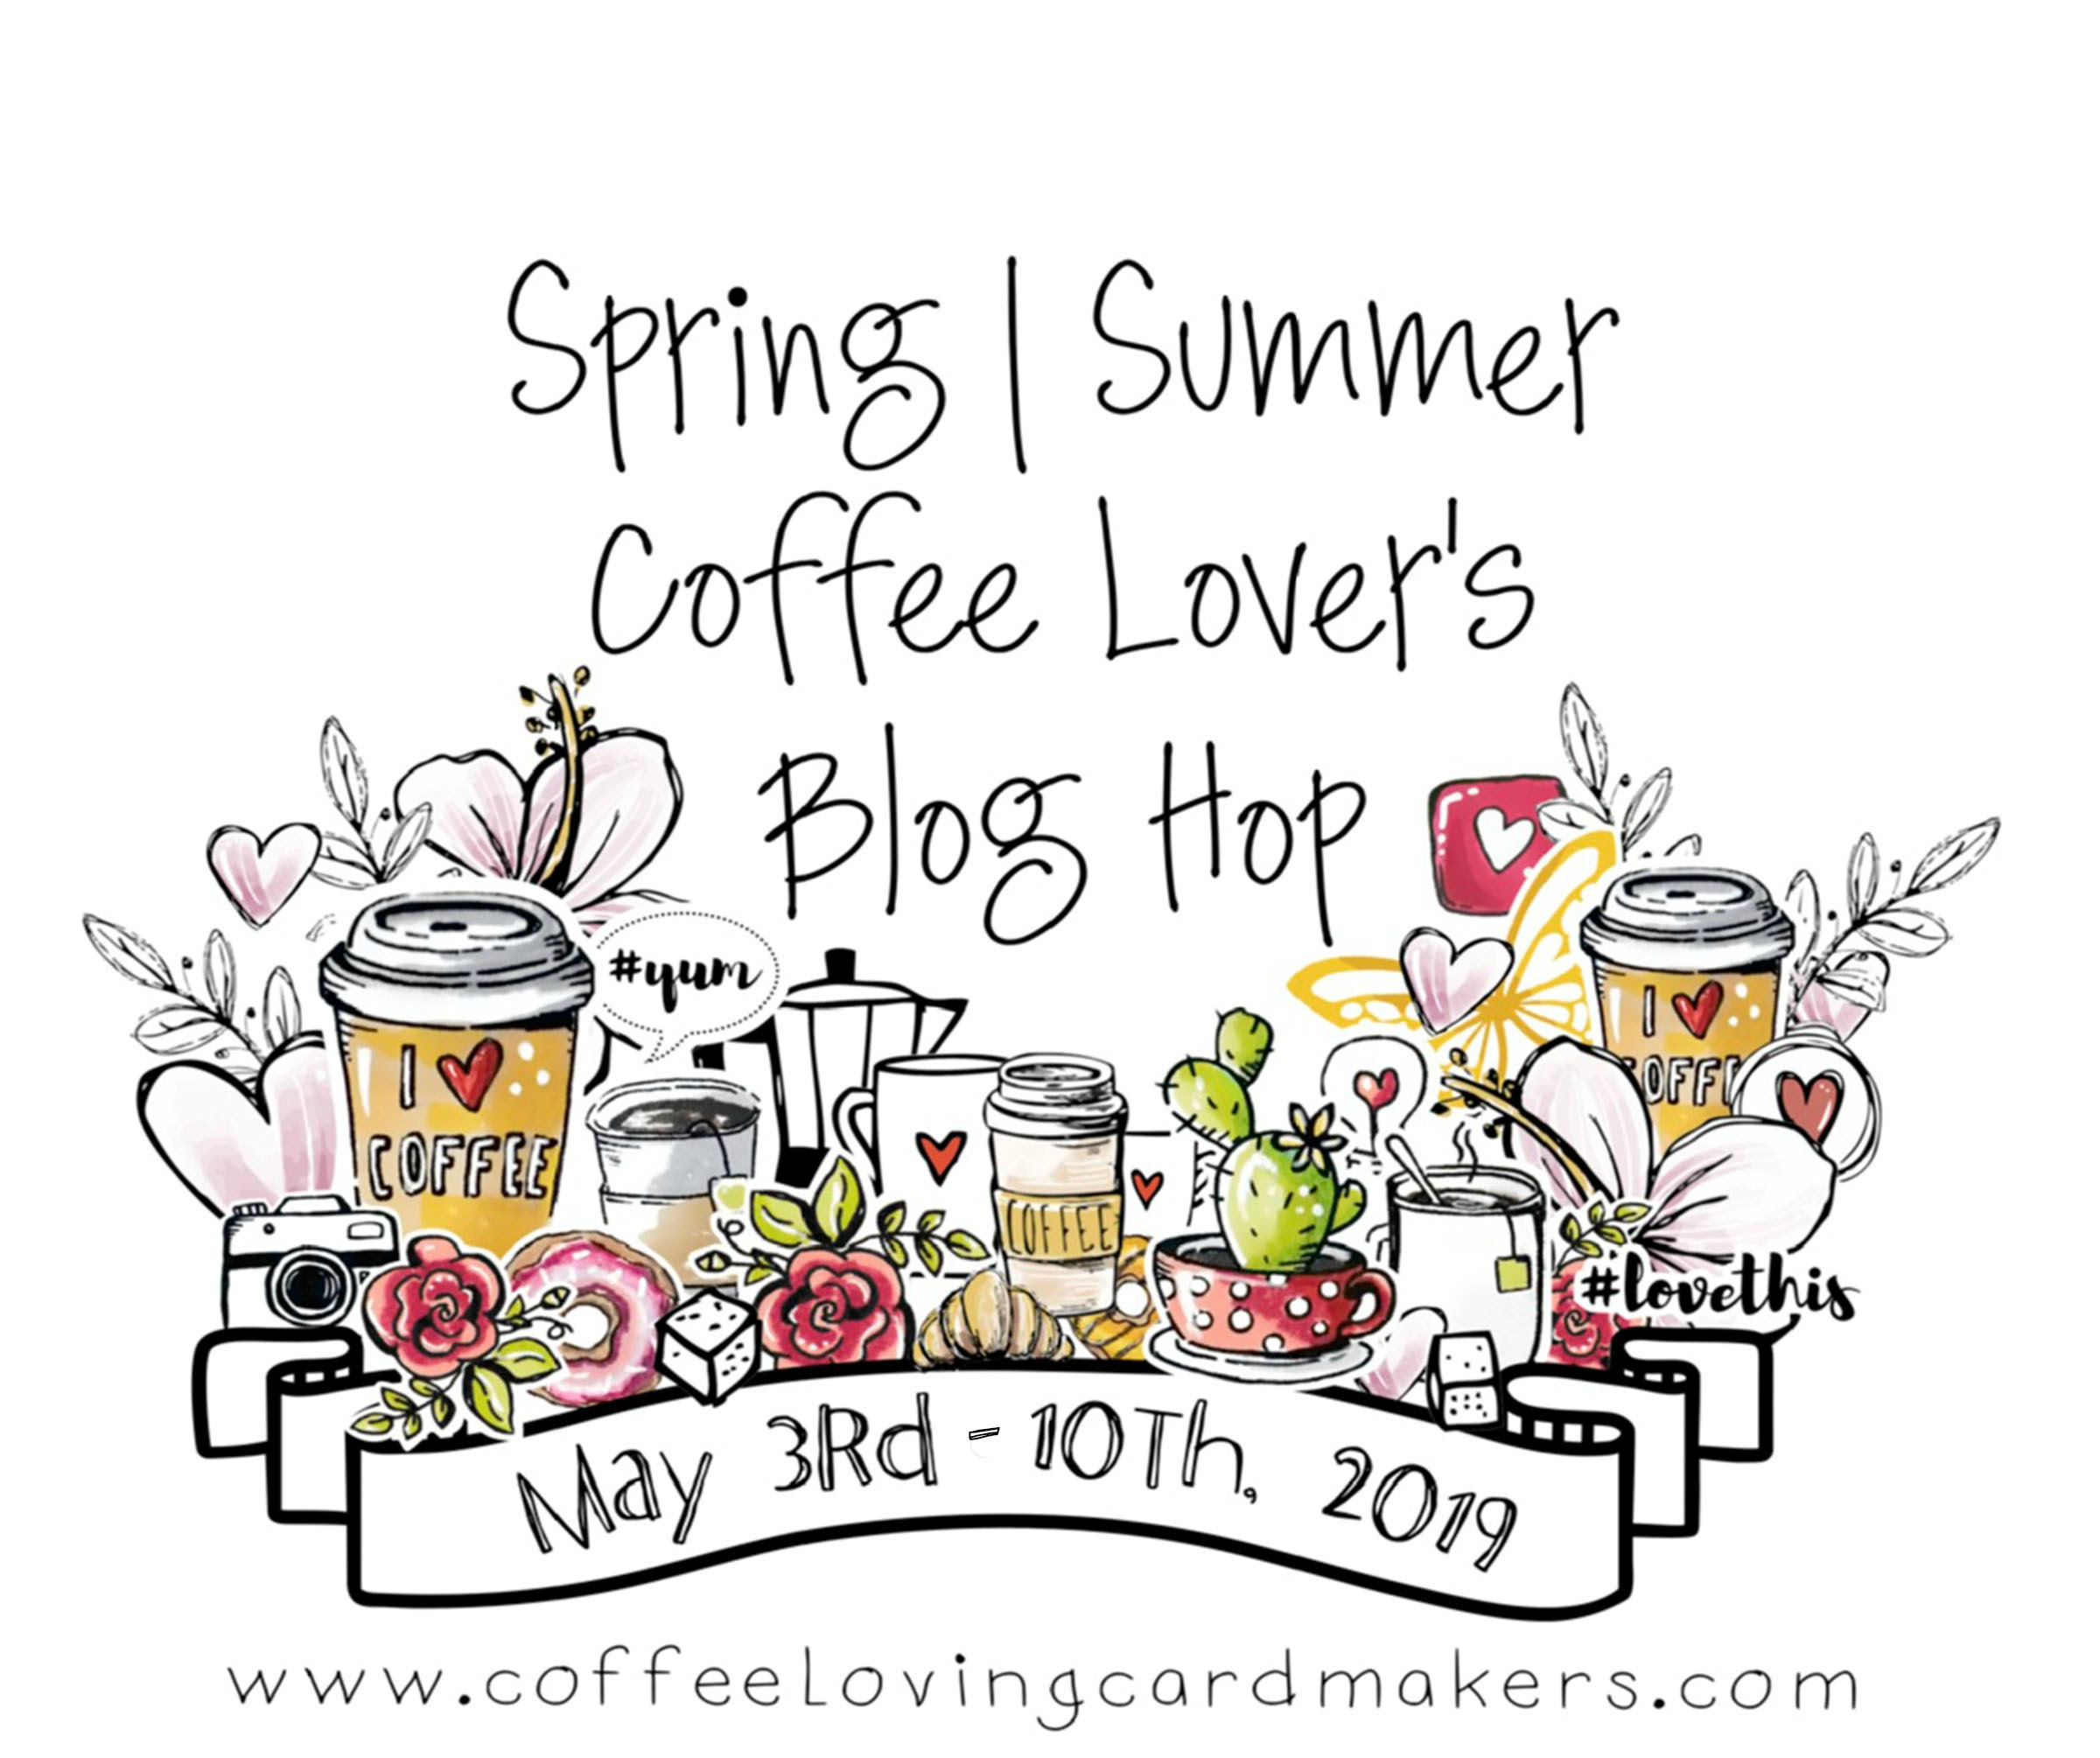 Spring Summer Coffe lovers blog hop